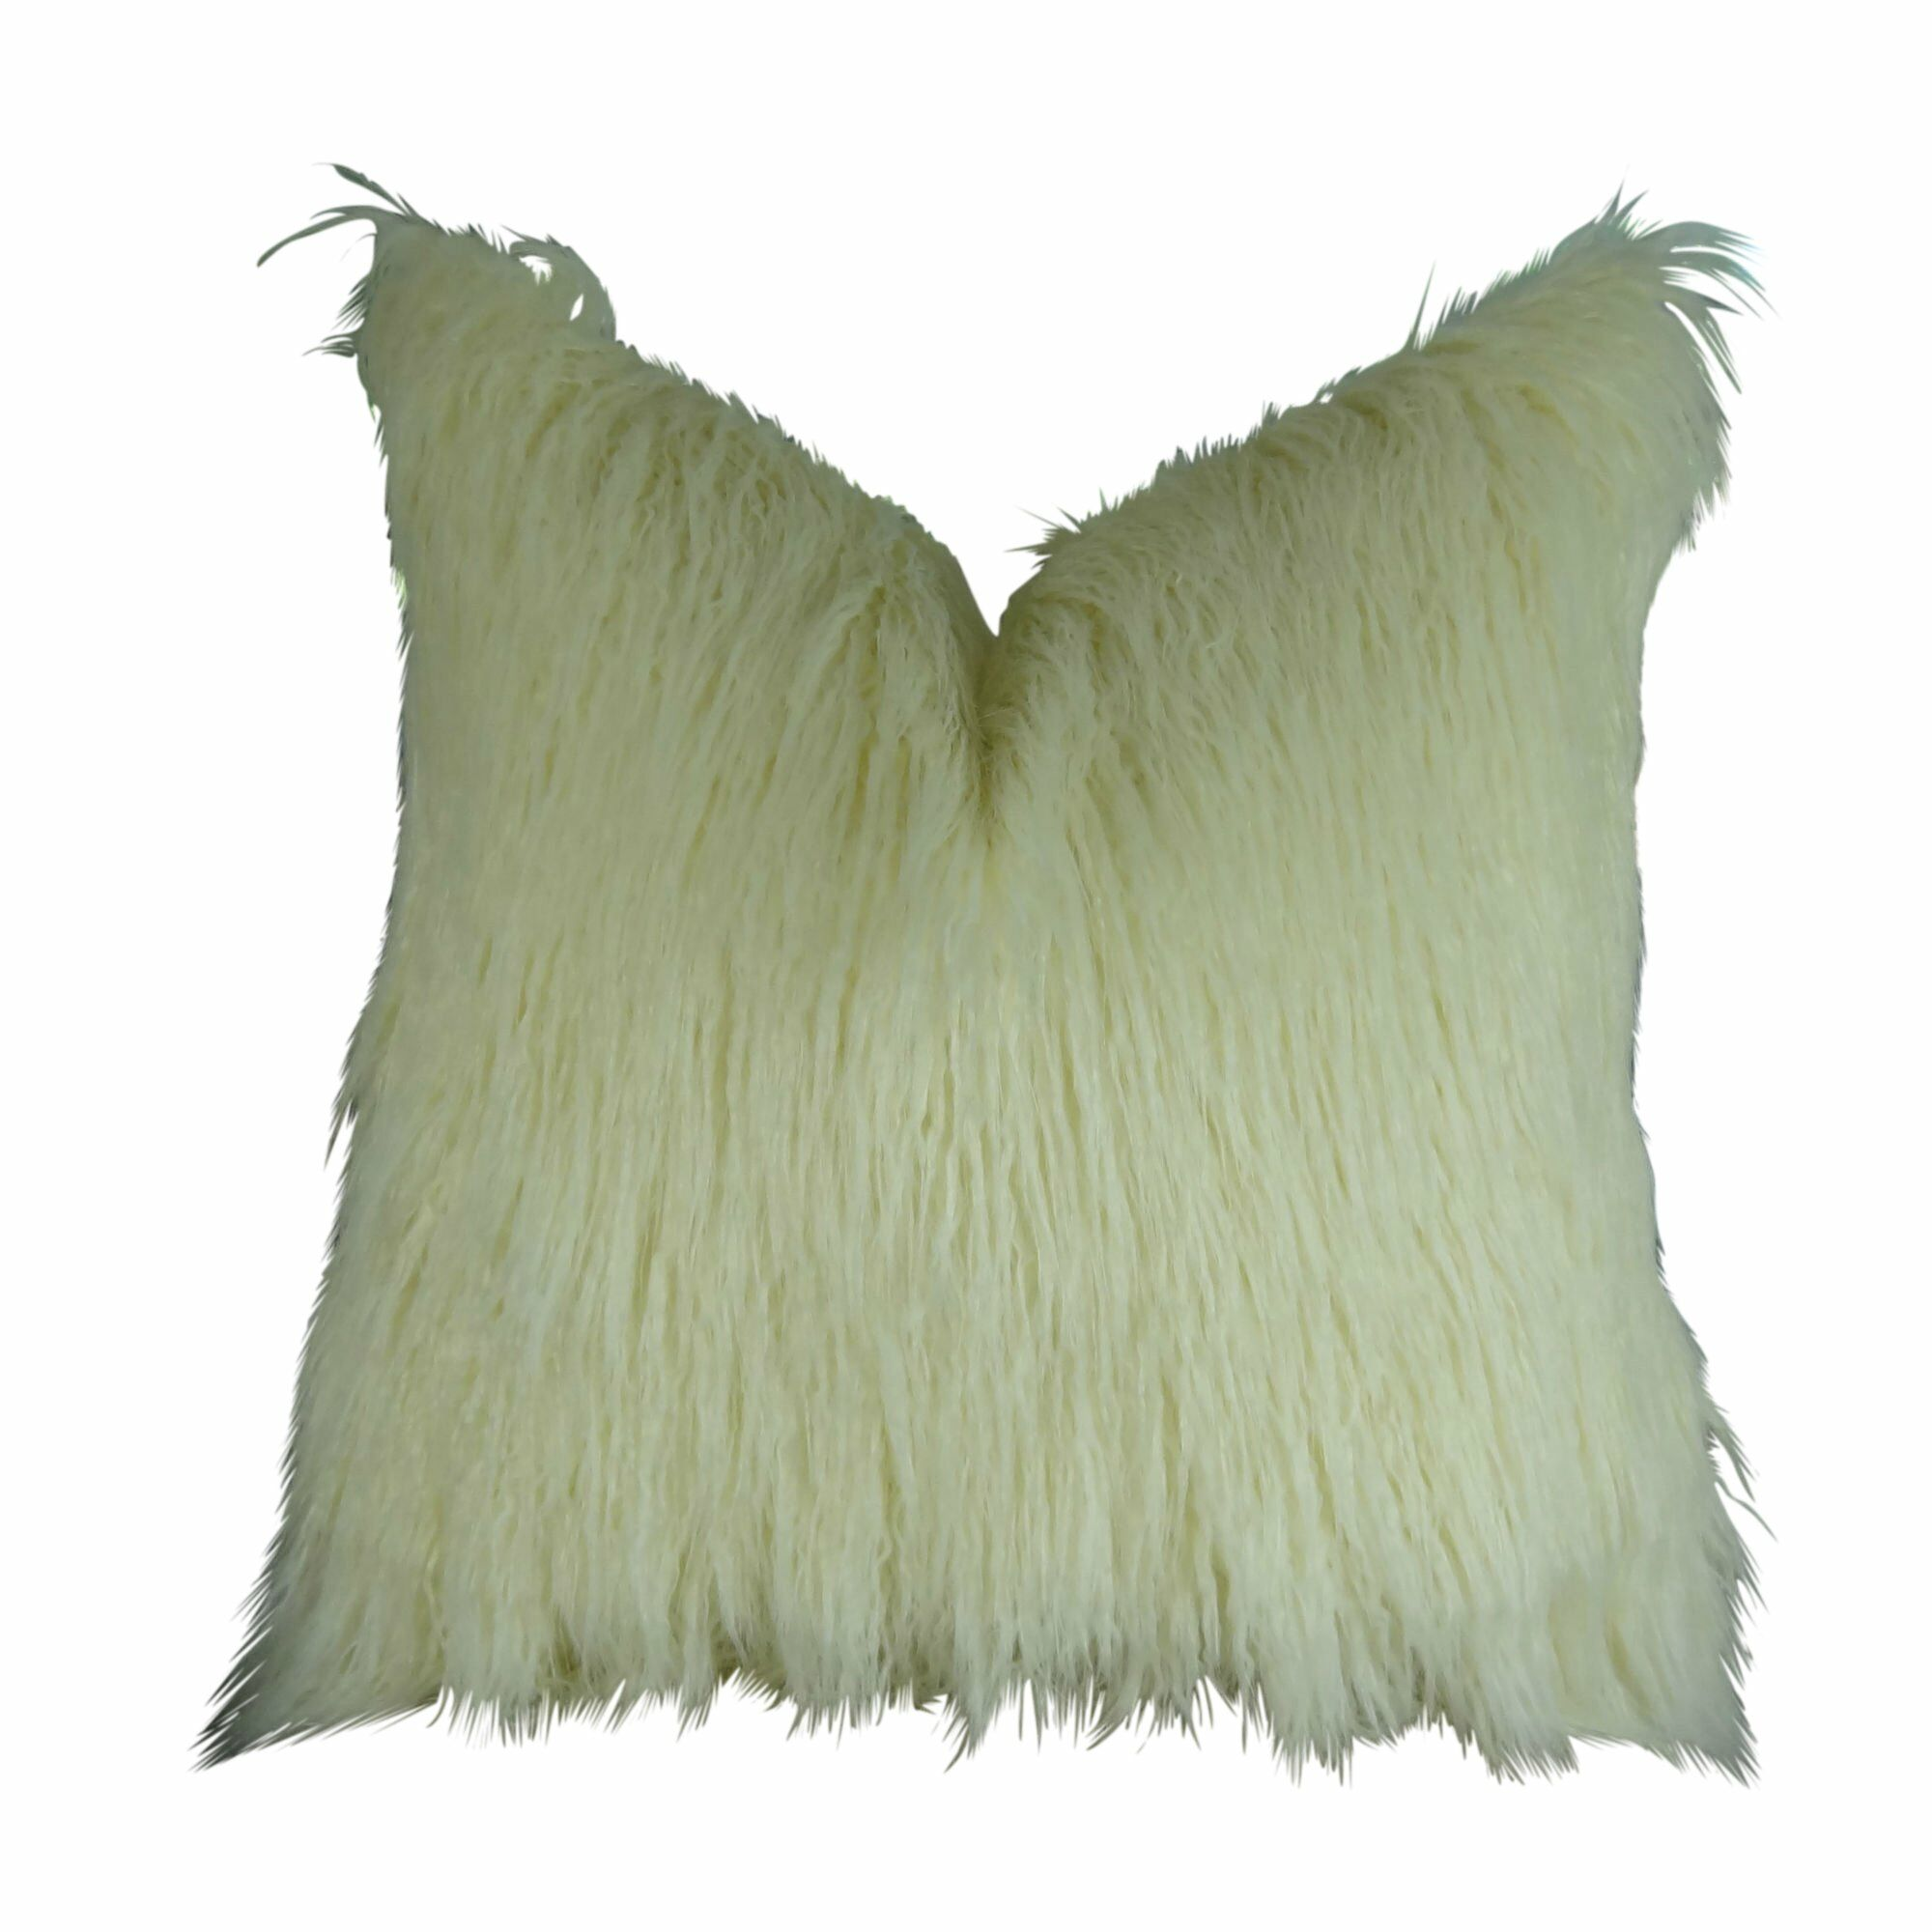 Jowett Curly Mongolian Faux Fur Pillow Fill Material: Cover Only - No Insert, Size: 20